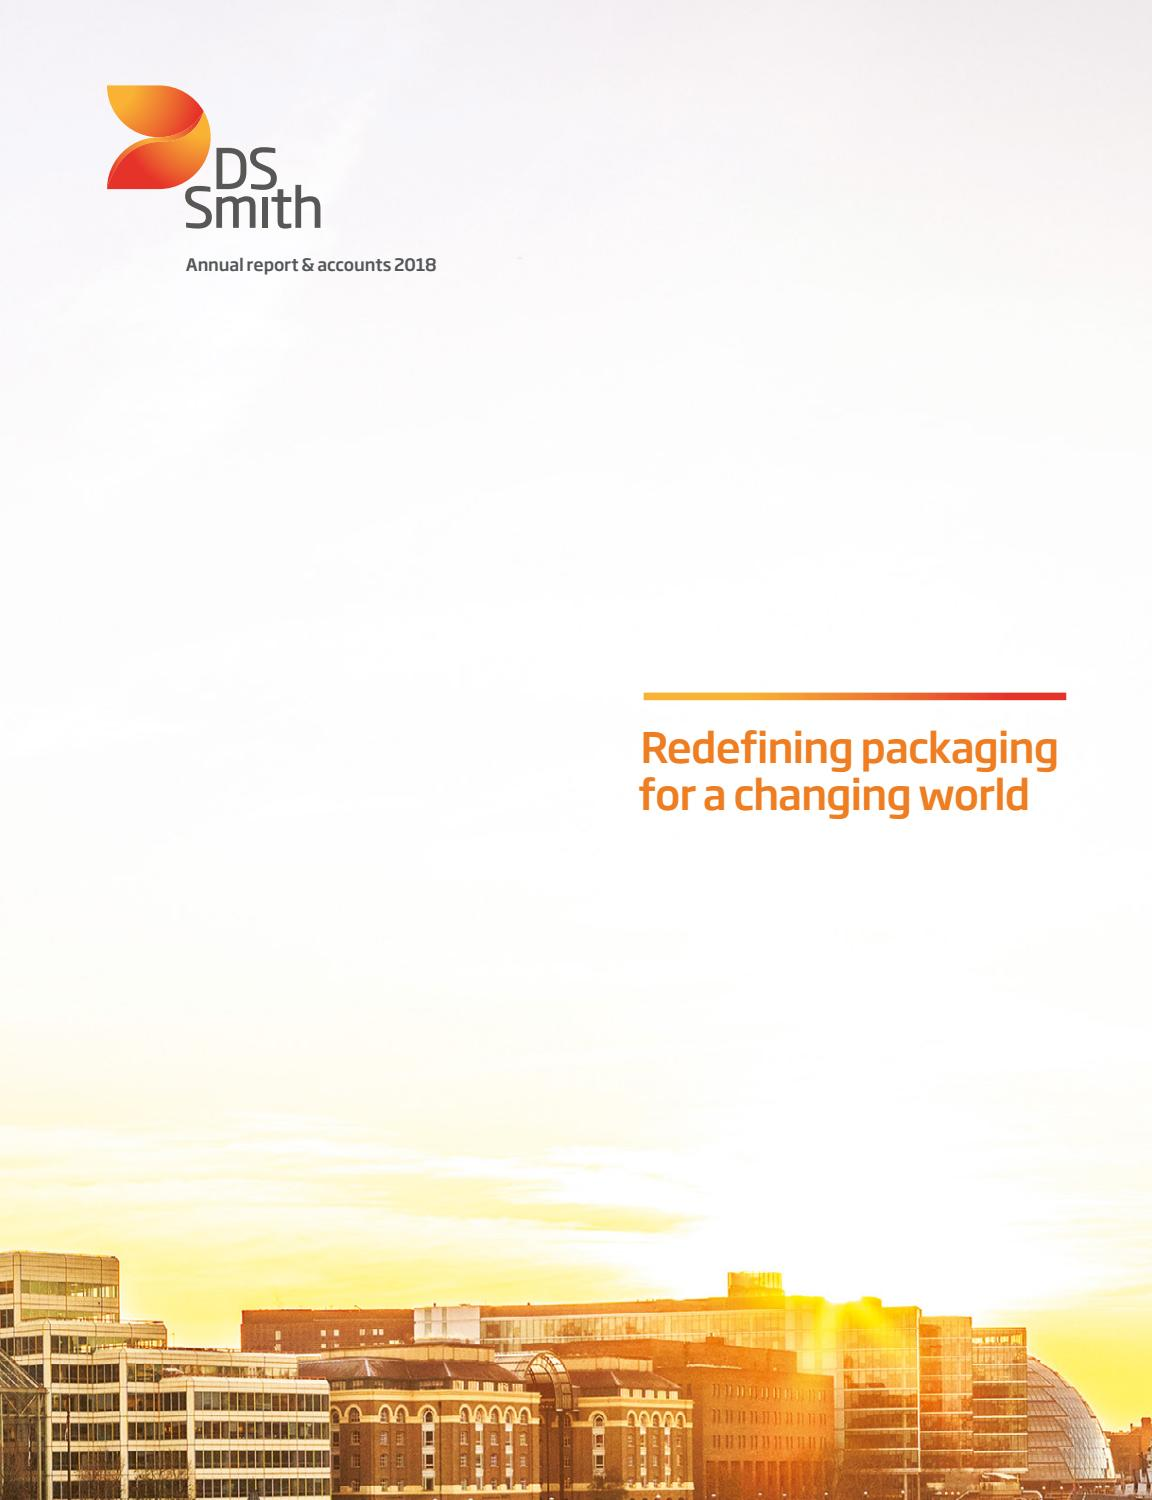 40baffff51 DS Smith Annual Report 2018 by DS Smith - issuu